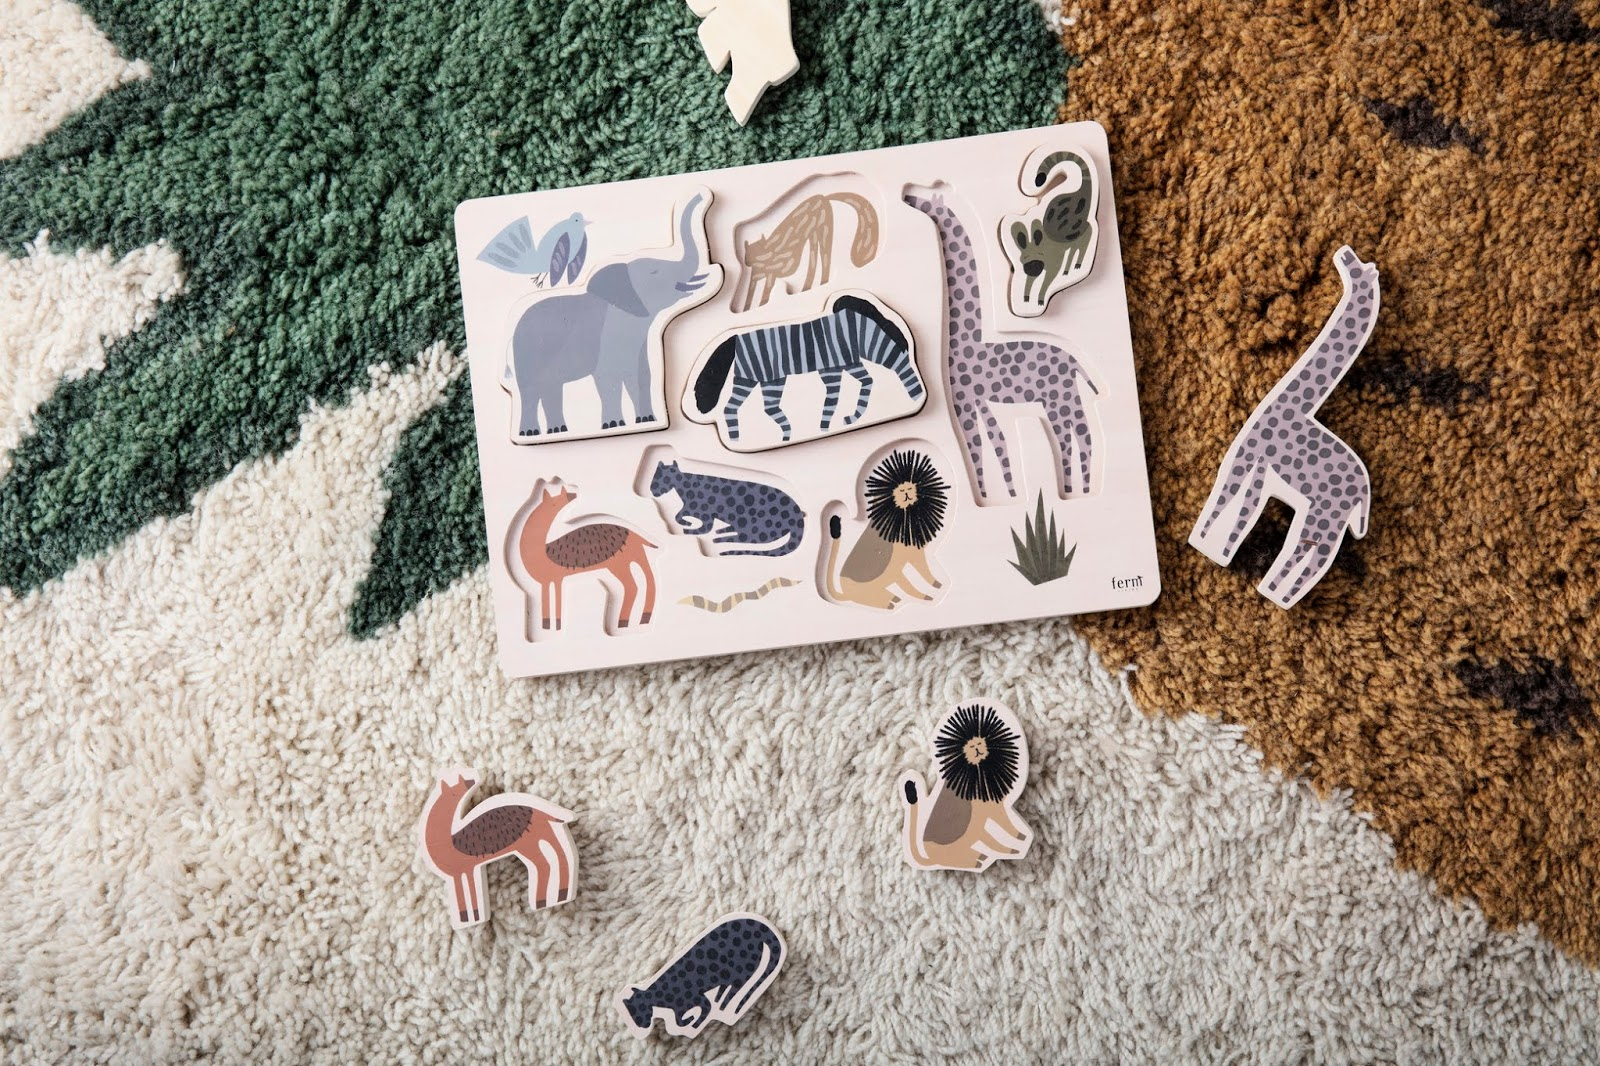 FERM LIVING 2018 KID'S ROOM